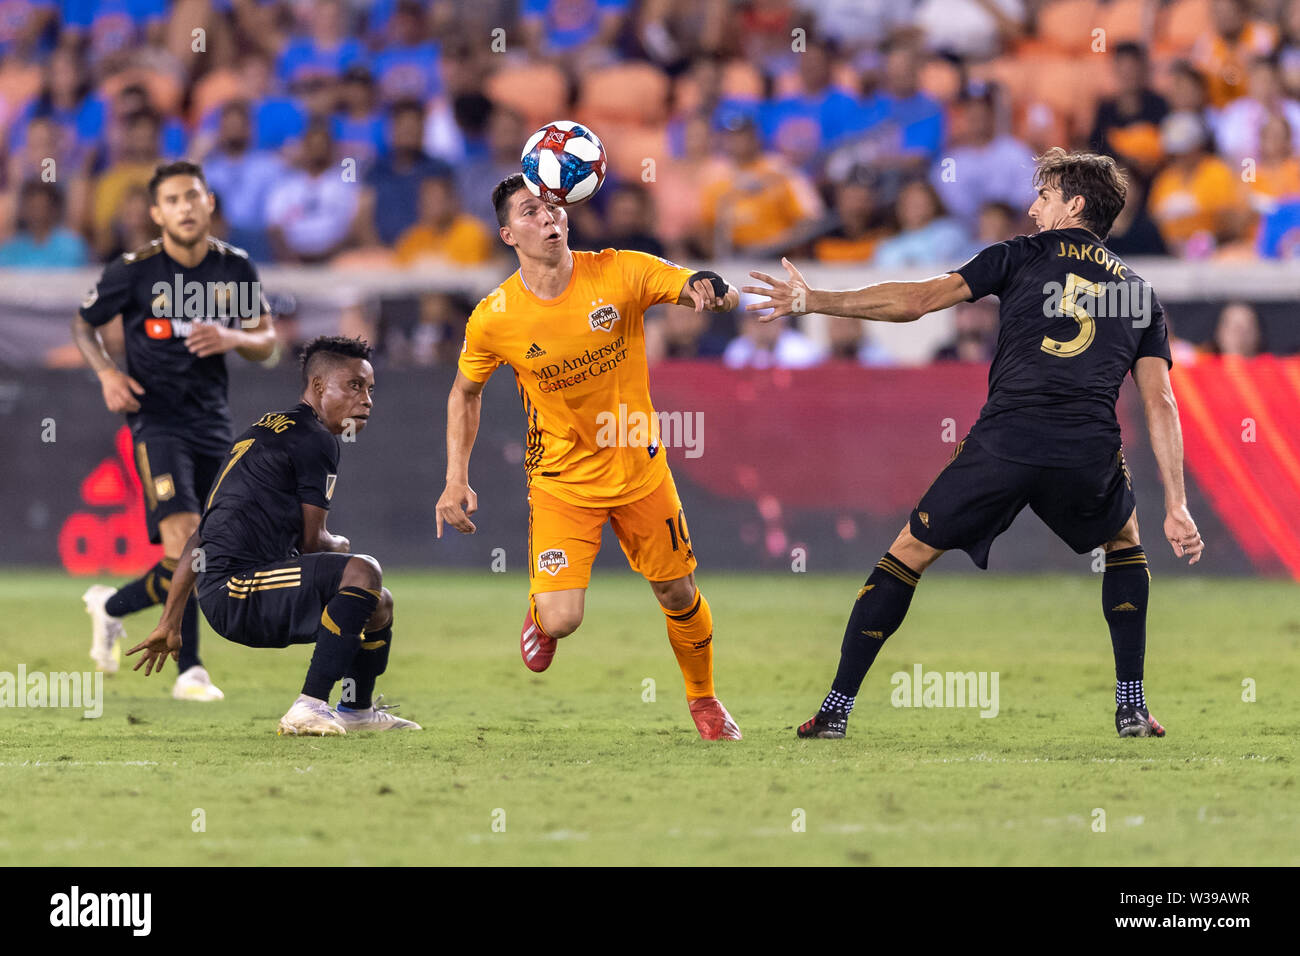 Houston, Texas, USA. 12th July, 2019. Houston Dynamo midfielder Tomas Martinez (10) looks to control the ball from Los Angeles FC defender Dejan Jakovic (5) and forward Latif Blessing (7) during a match between Los Angeles FC and Houston Dynamo at BBVA Stadium in Houston, Texas. The final LAFC wins 3-1. Maria Lysaker/CSM/Alamy Live News - Stock Image